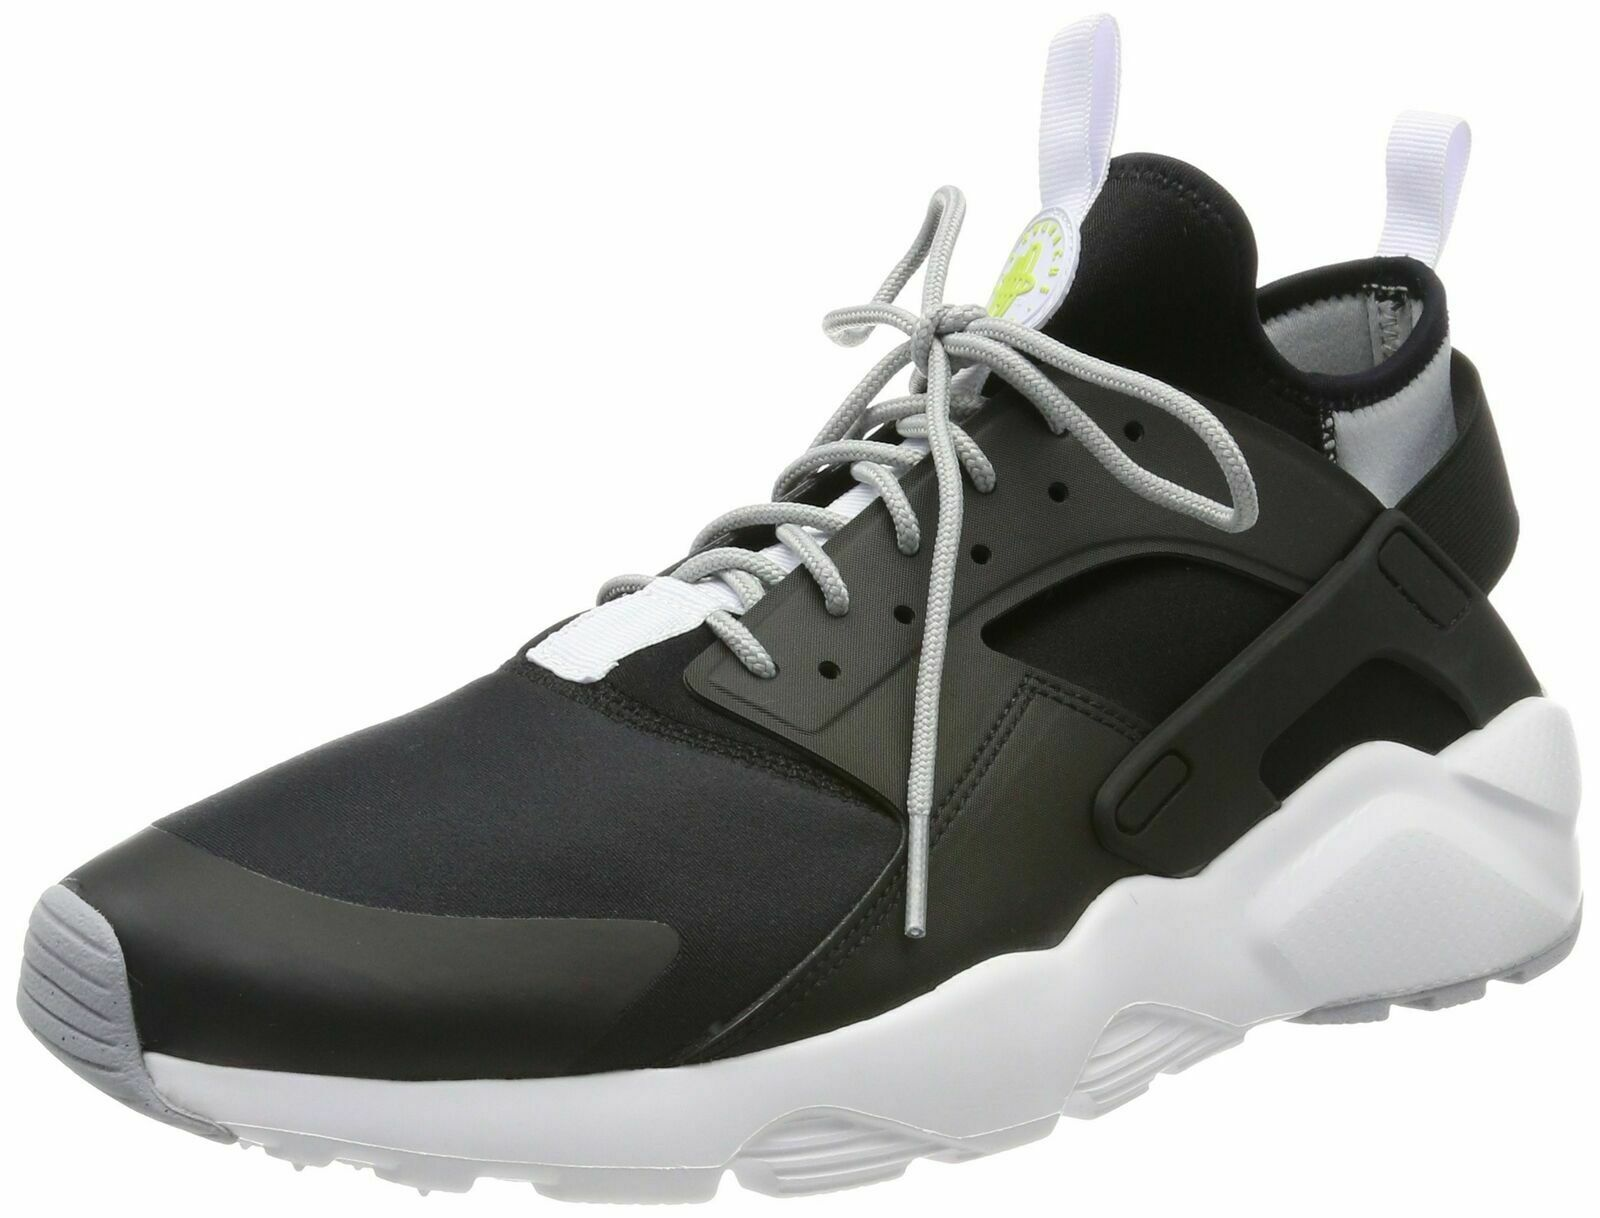 outlet store 4967b 1f801 Nike Air Huarache Run Ultra Sz 11 Triple Black 819685 002 for sale ...